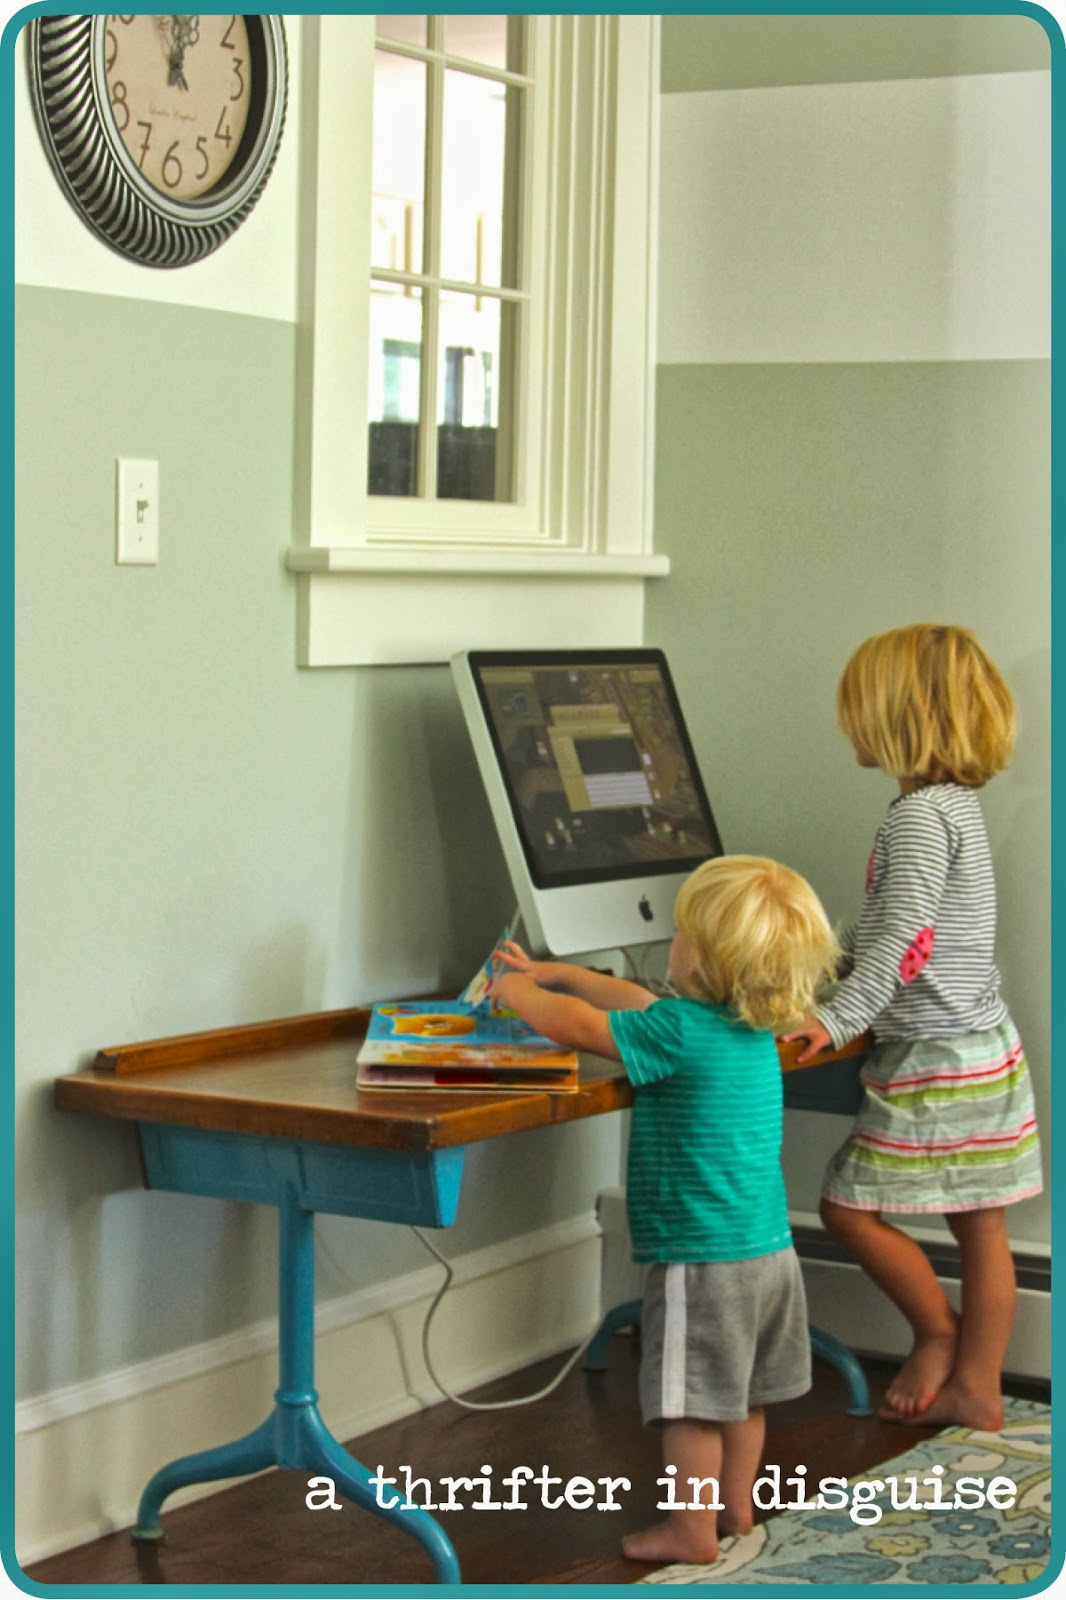 This Vintage Kids Double Desk is Our New Computer Table - A Thrifter In Disguise: Vintage Children's Desk {Super Quick} Makeover